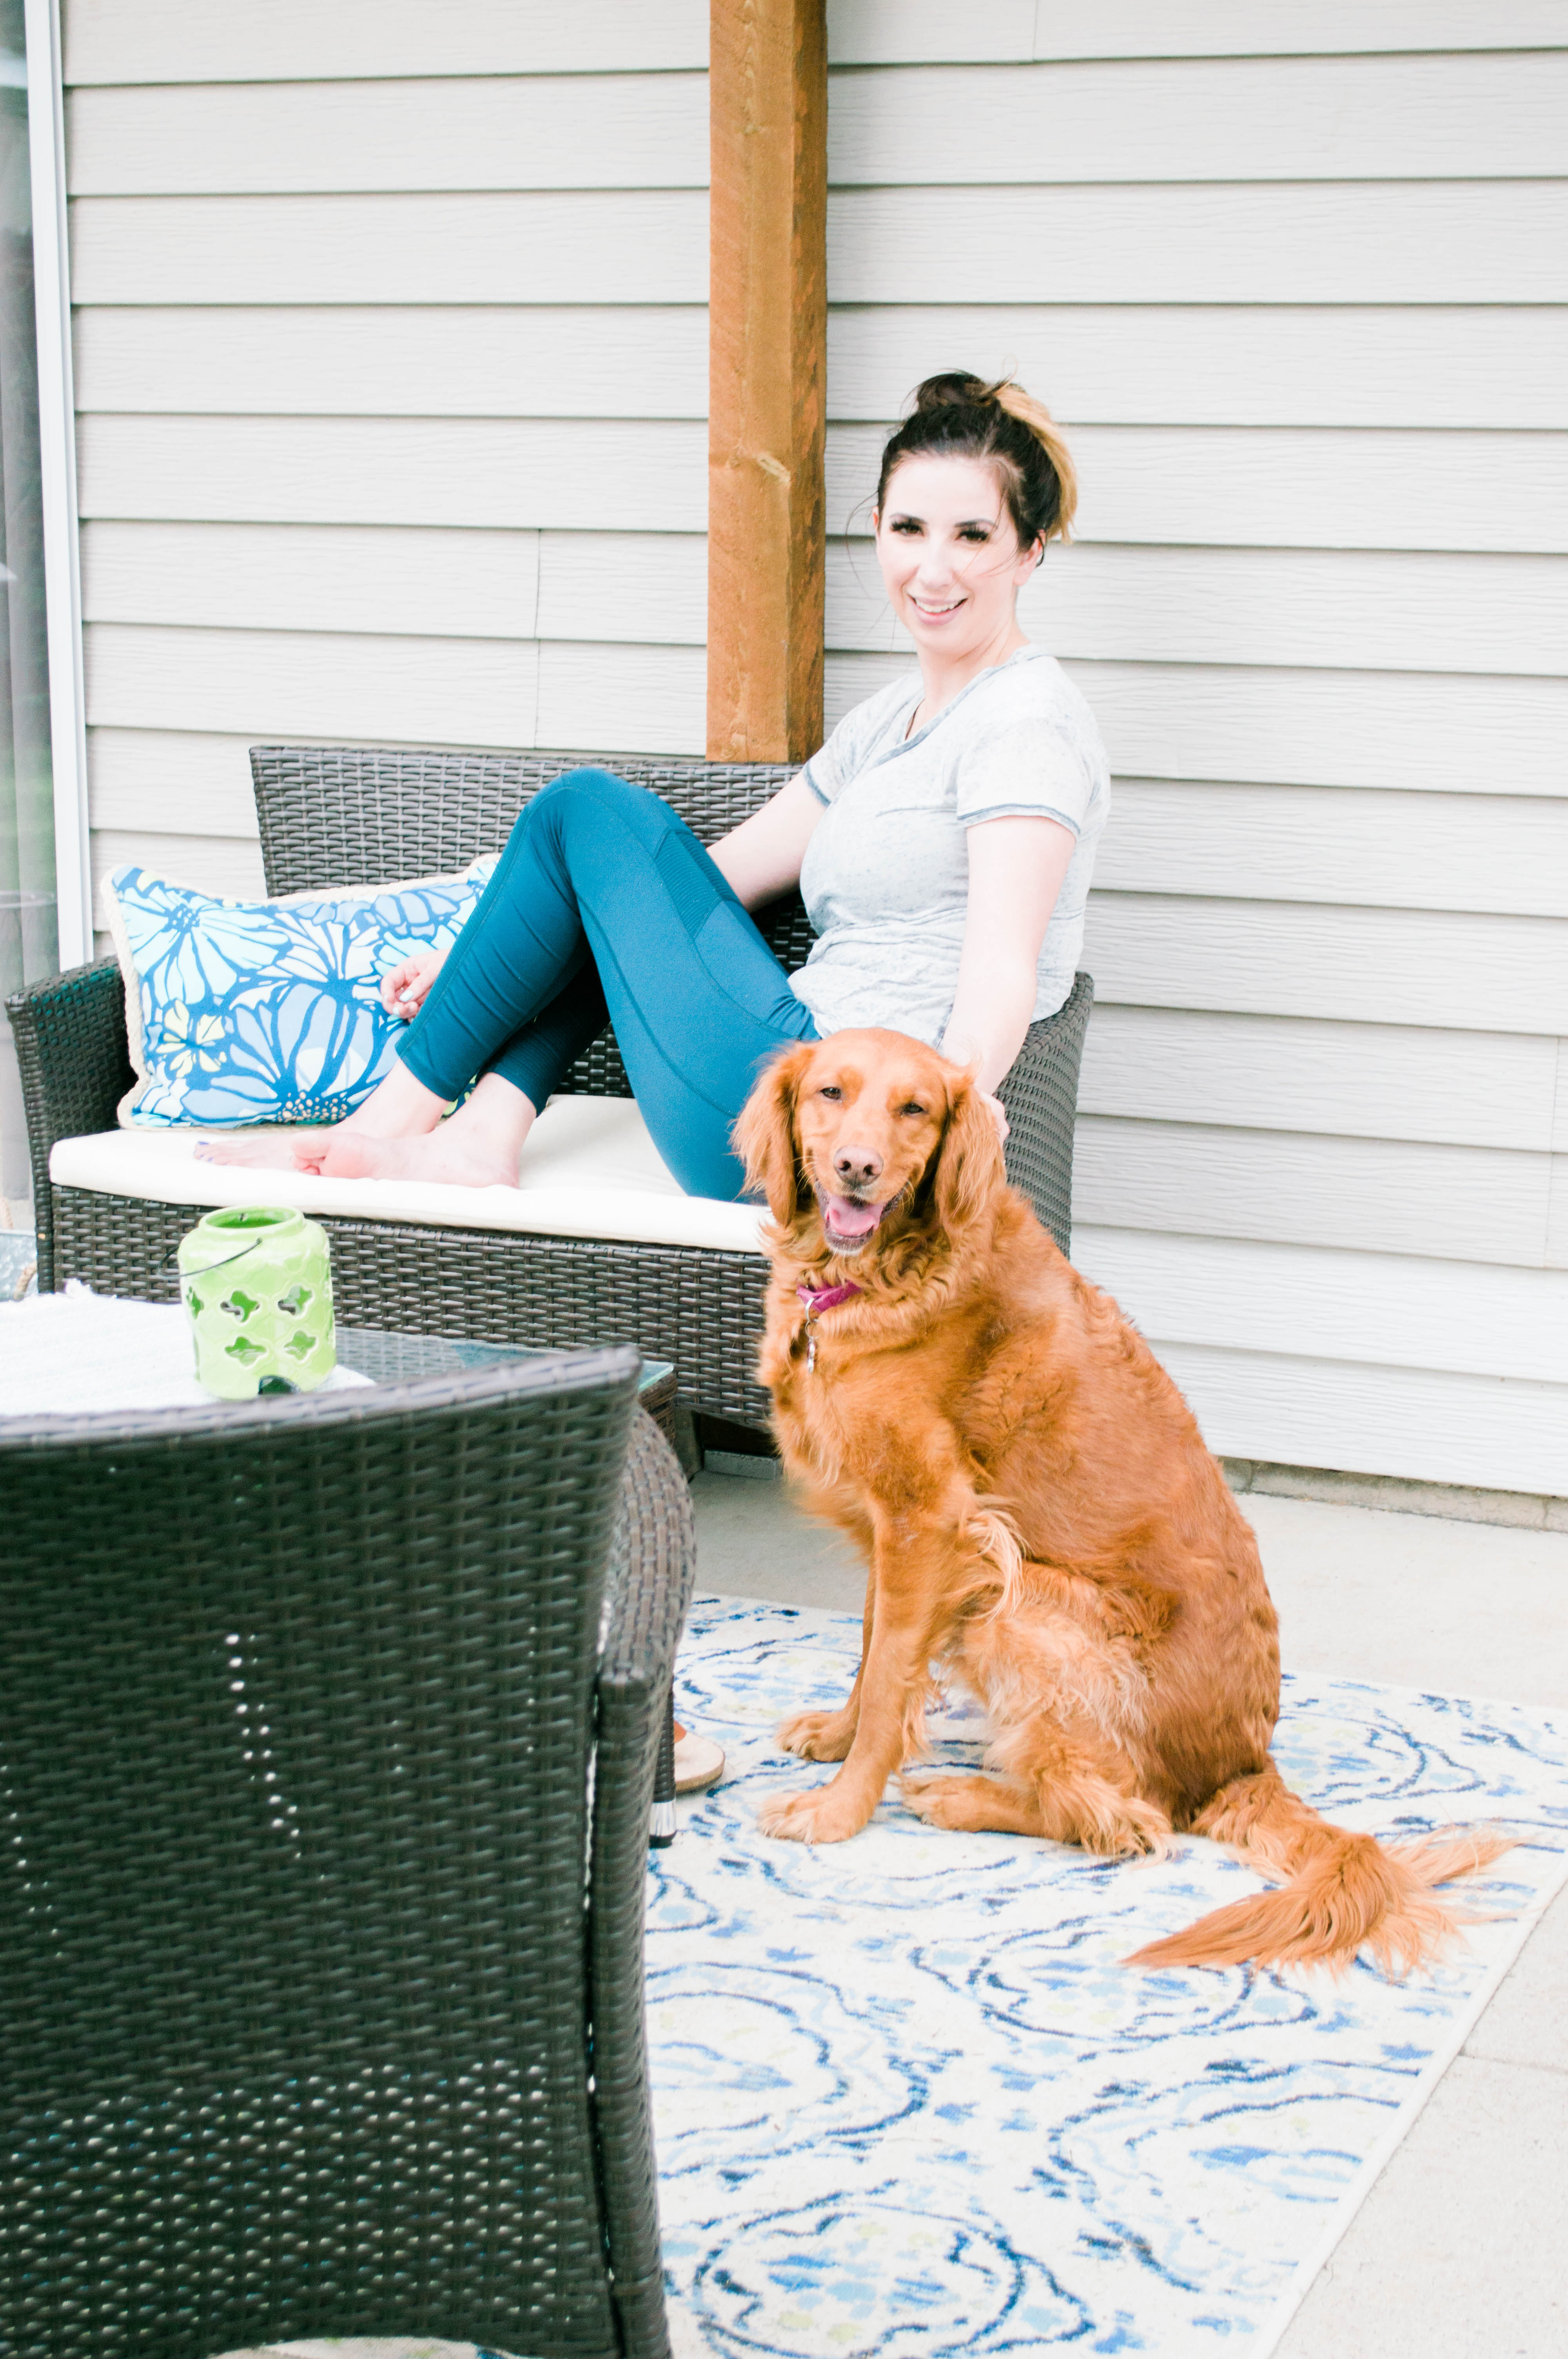 Affordable Patio Set and Patio Idea for your backyard - this backyard patio transformation includes affordable patio furniture and a DIY Pergola project // Hey There, Chelsie